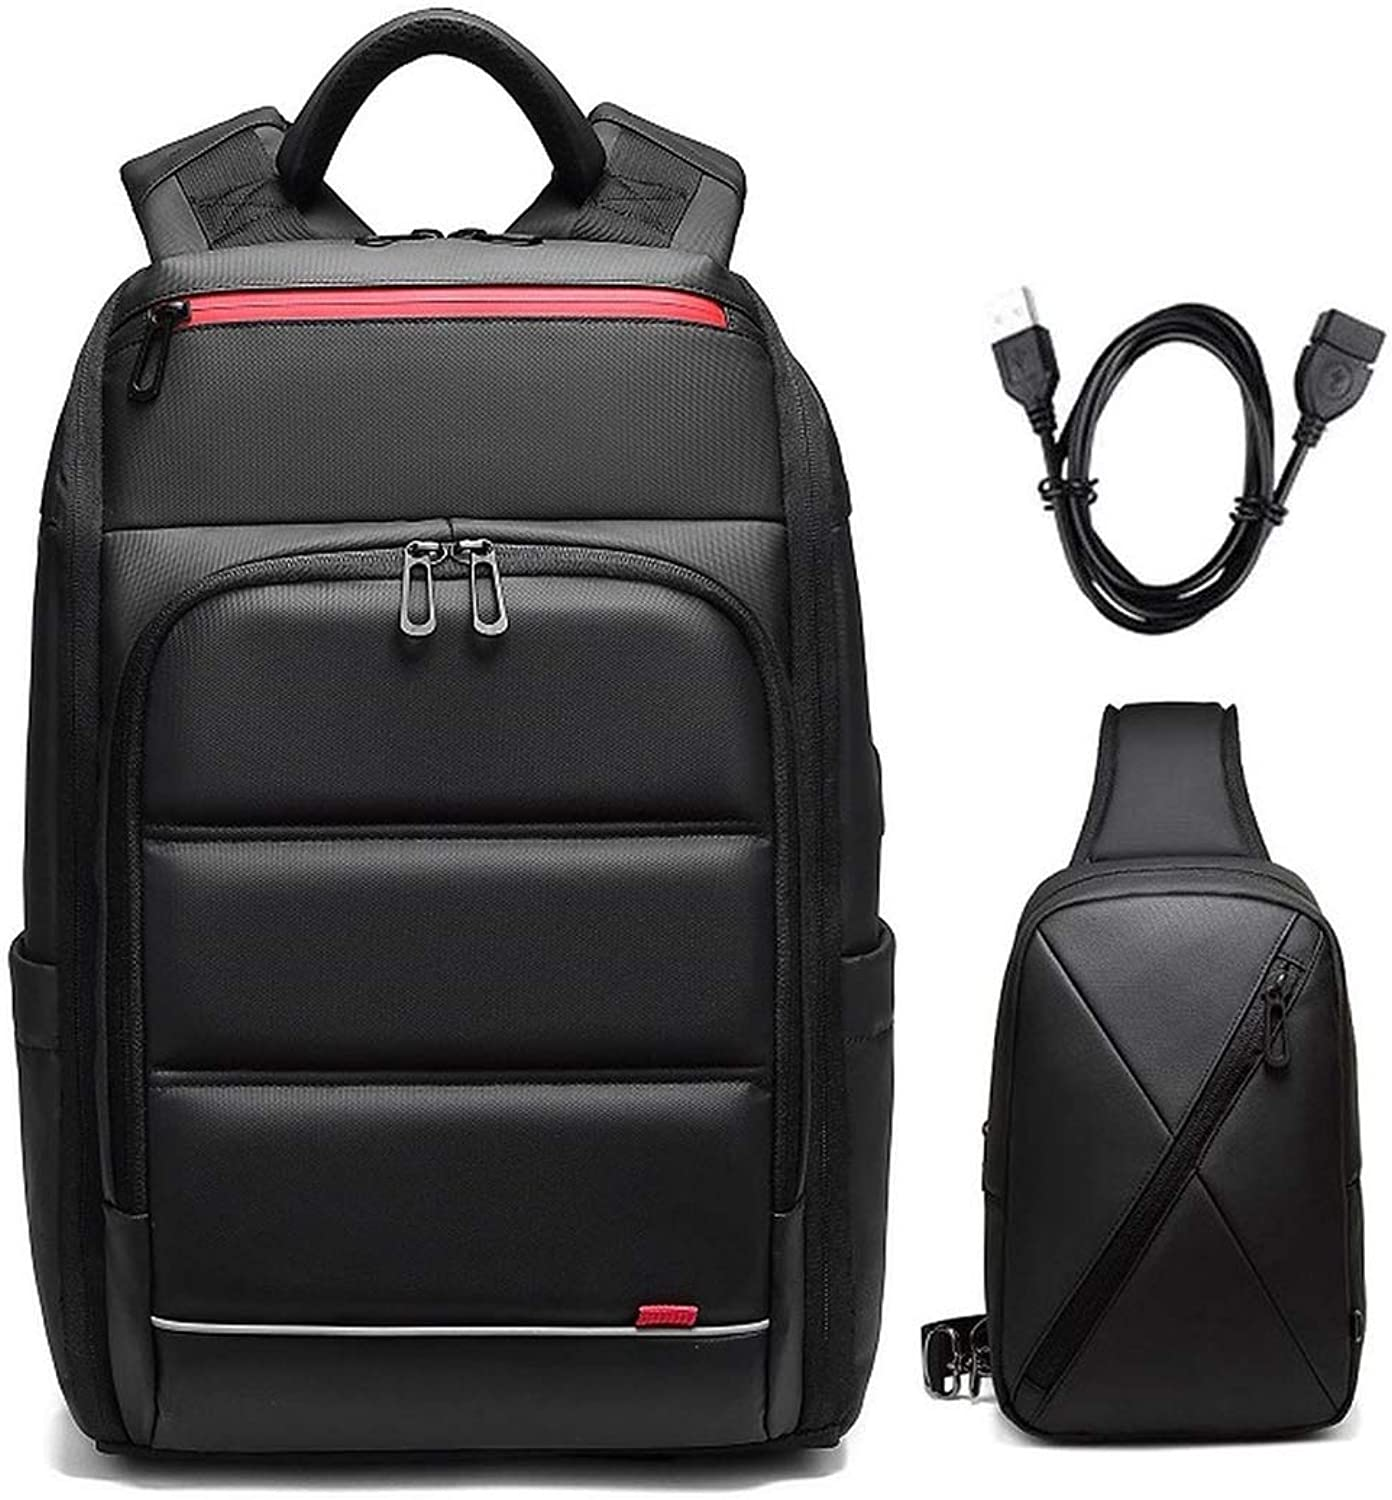 Men Wateroof 15.6 Inch Shockproof Busis Laptop School Bags With Usb Charging Port Travel Backpacks